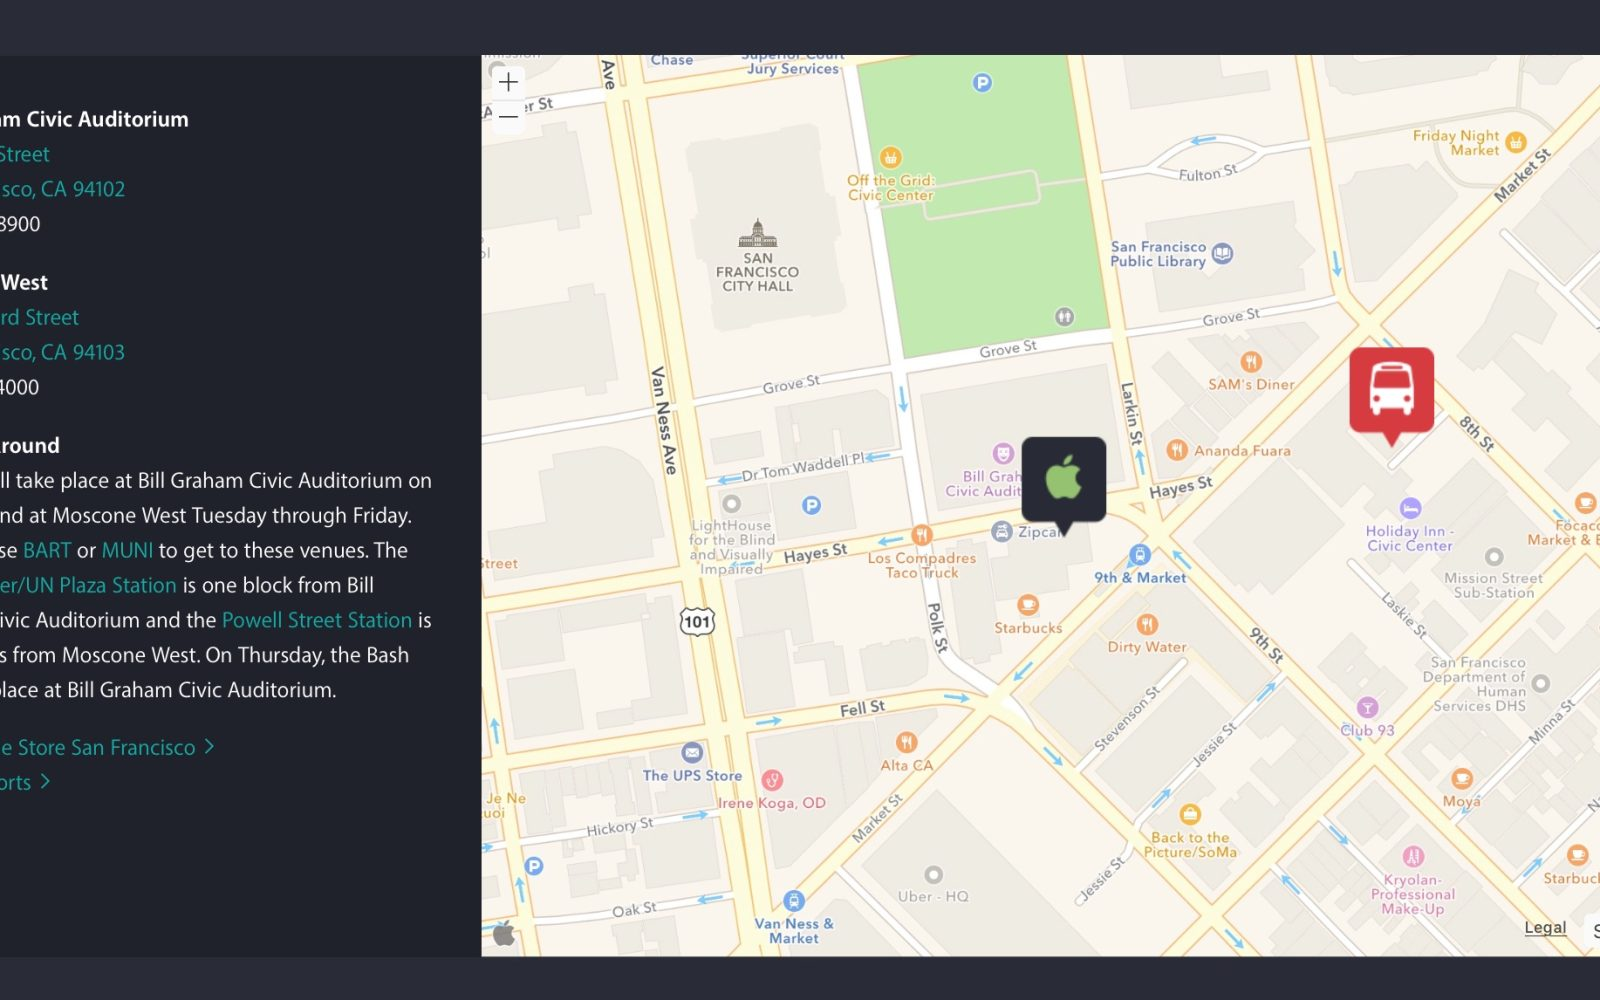 Embedded Apple Map on WWDC site suggests official public MapKit web API coming soon